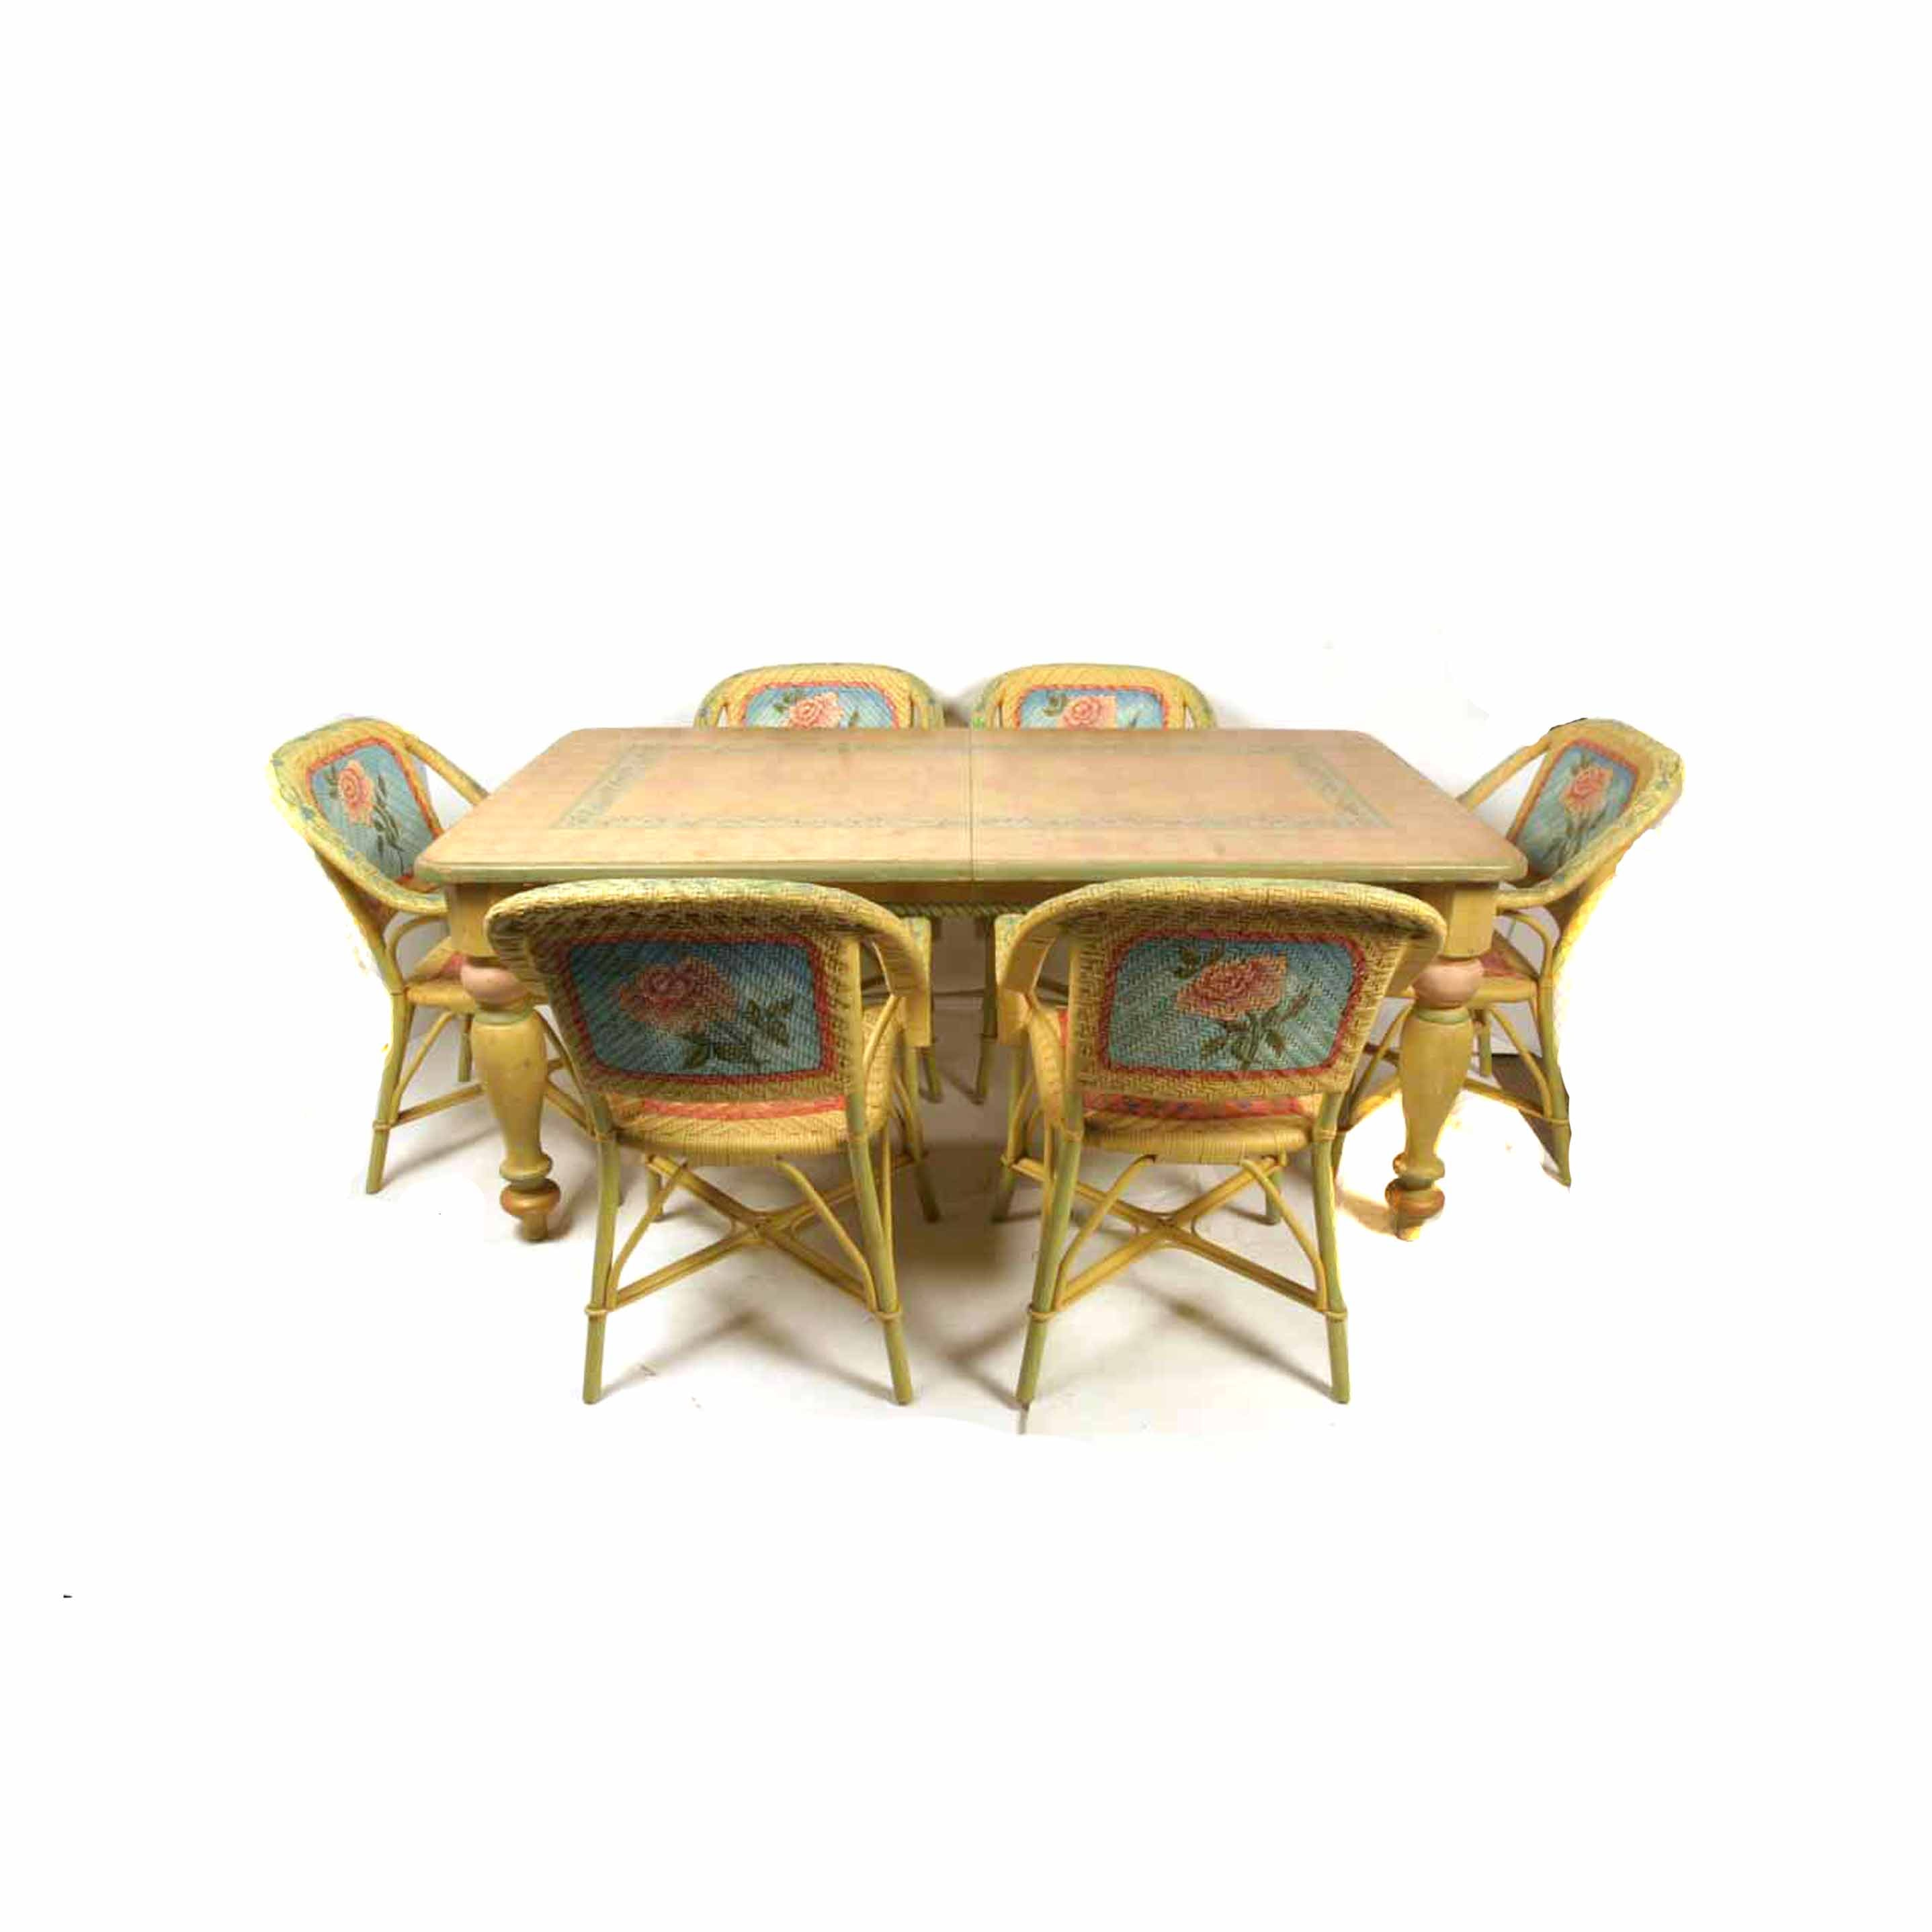 Hand Painted Dining Table with Six Chairs